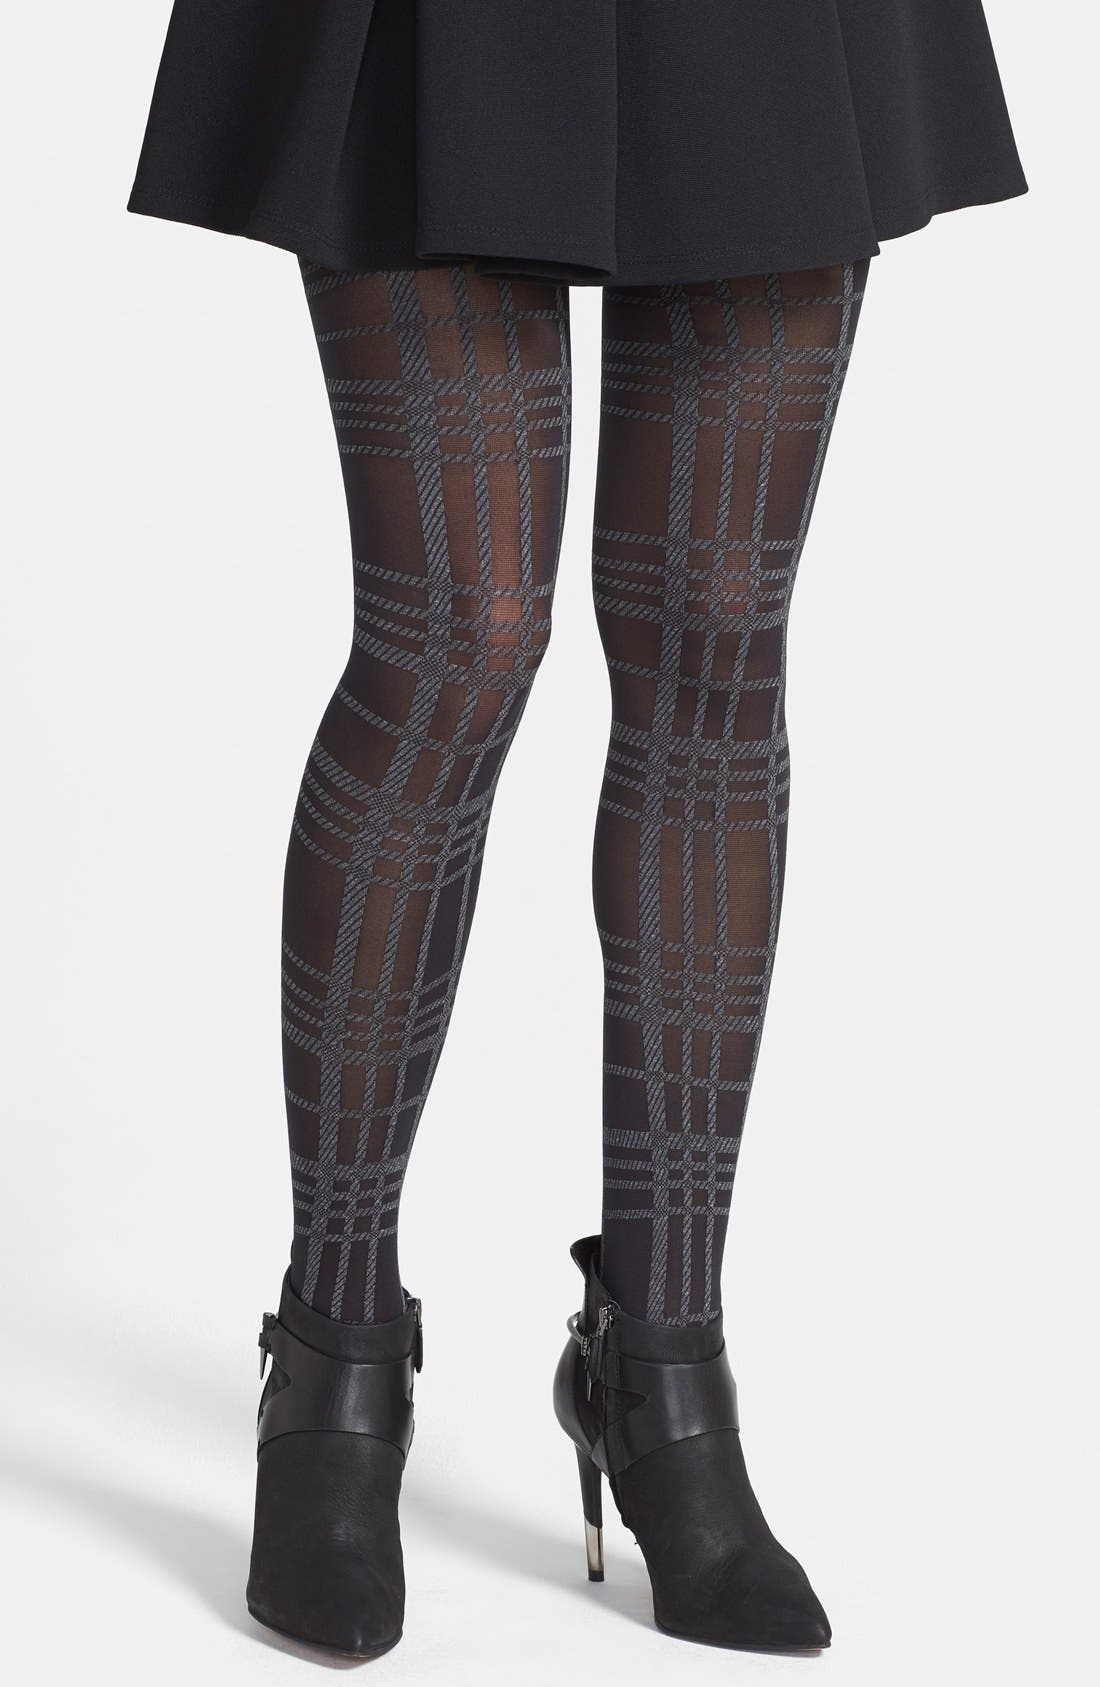 Main Image - Via Spiga 'Kensington' Plaid Tights